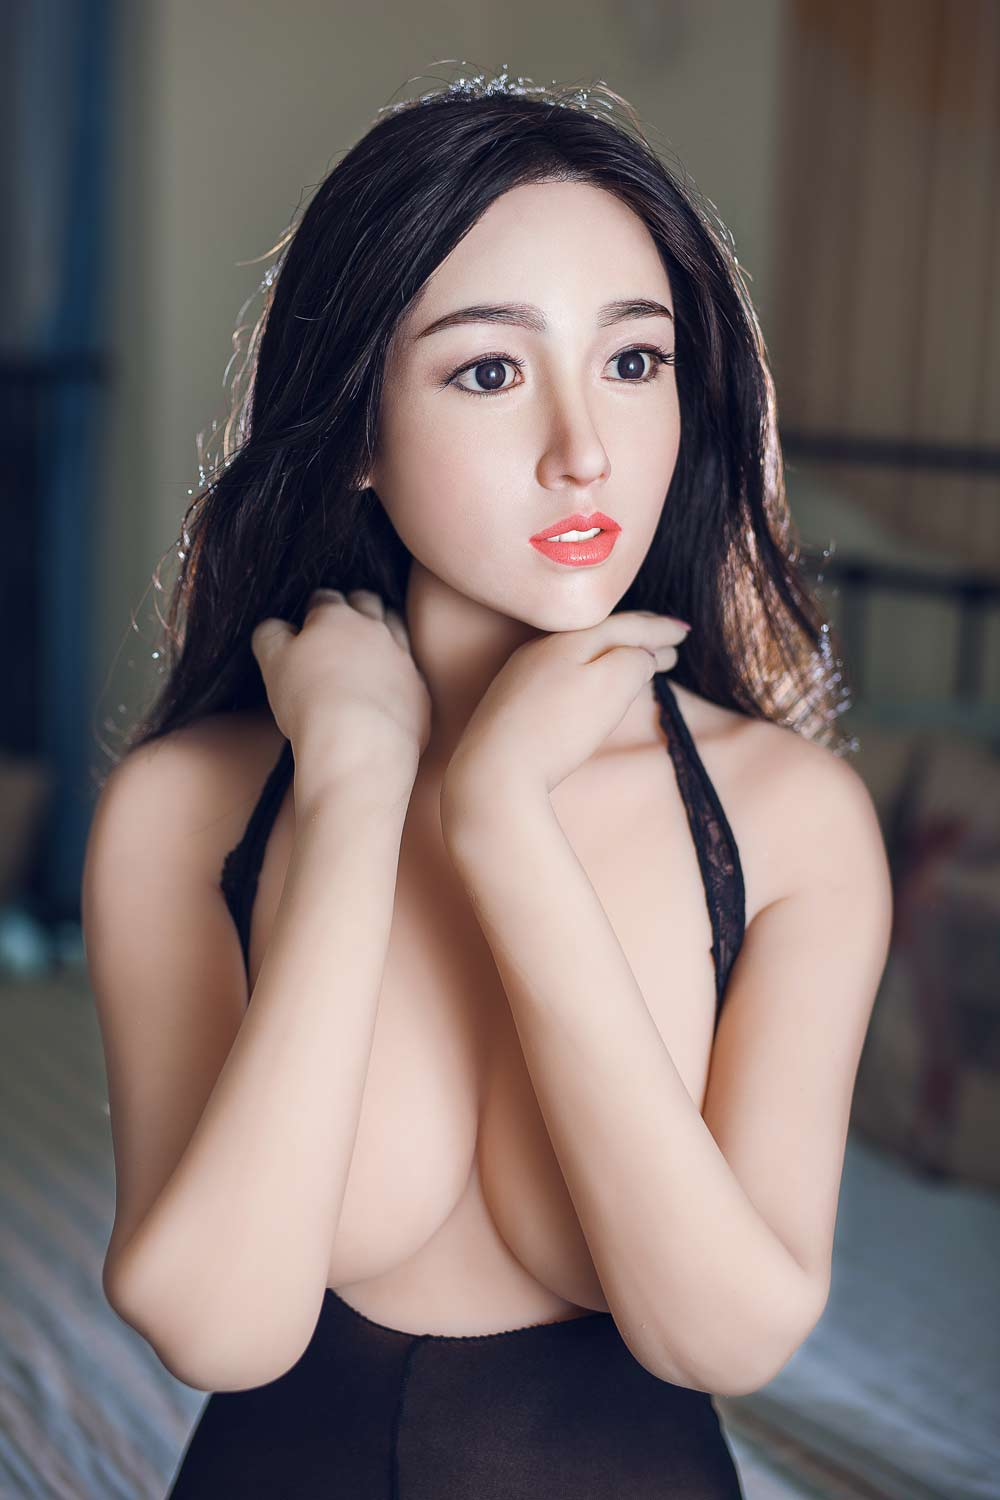 Silicone sex doll with hands on shoulders